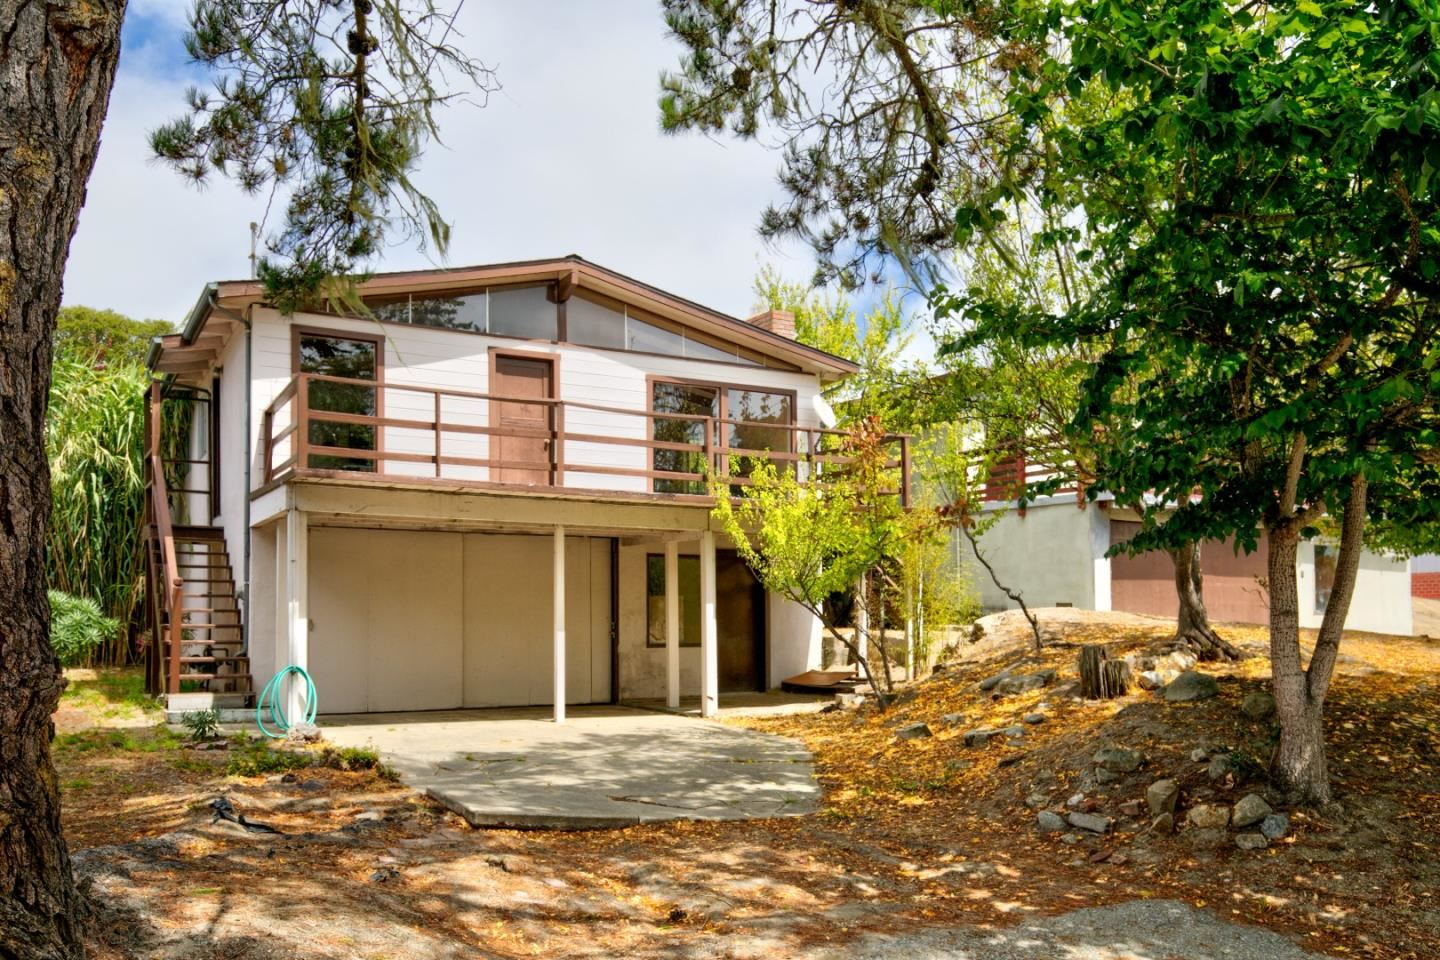 Photo for 1047 Jefferson ST, MONTEREY, CA 93940 (MLS # ML81772177)